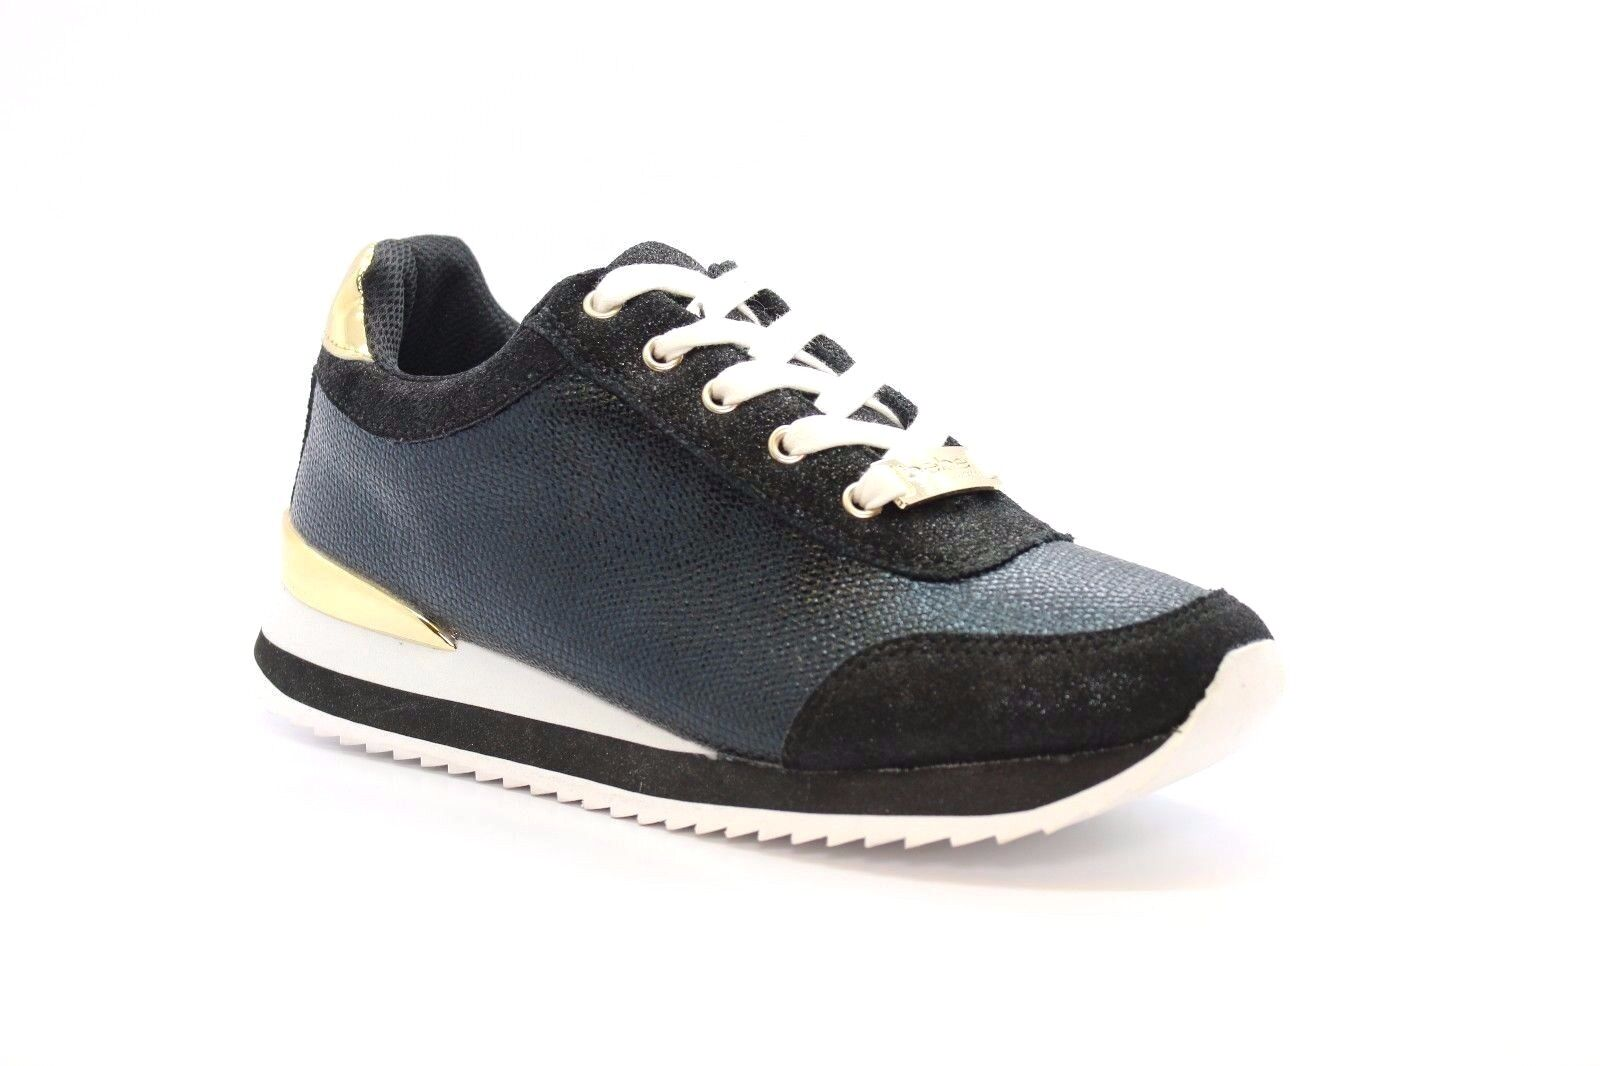 BEBE CORINEBLKFX CORINE Wmn's (M) Black Faux Synthetic Leather Lifestyle shoes